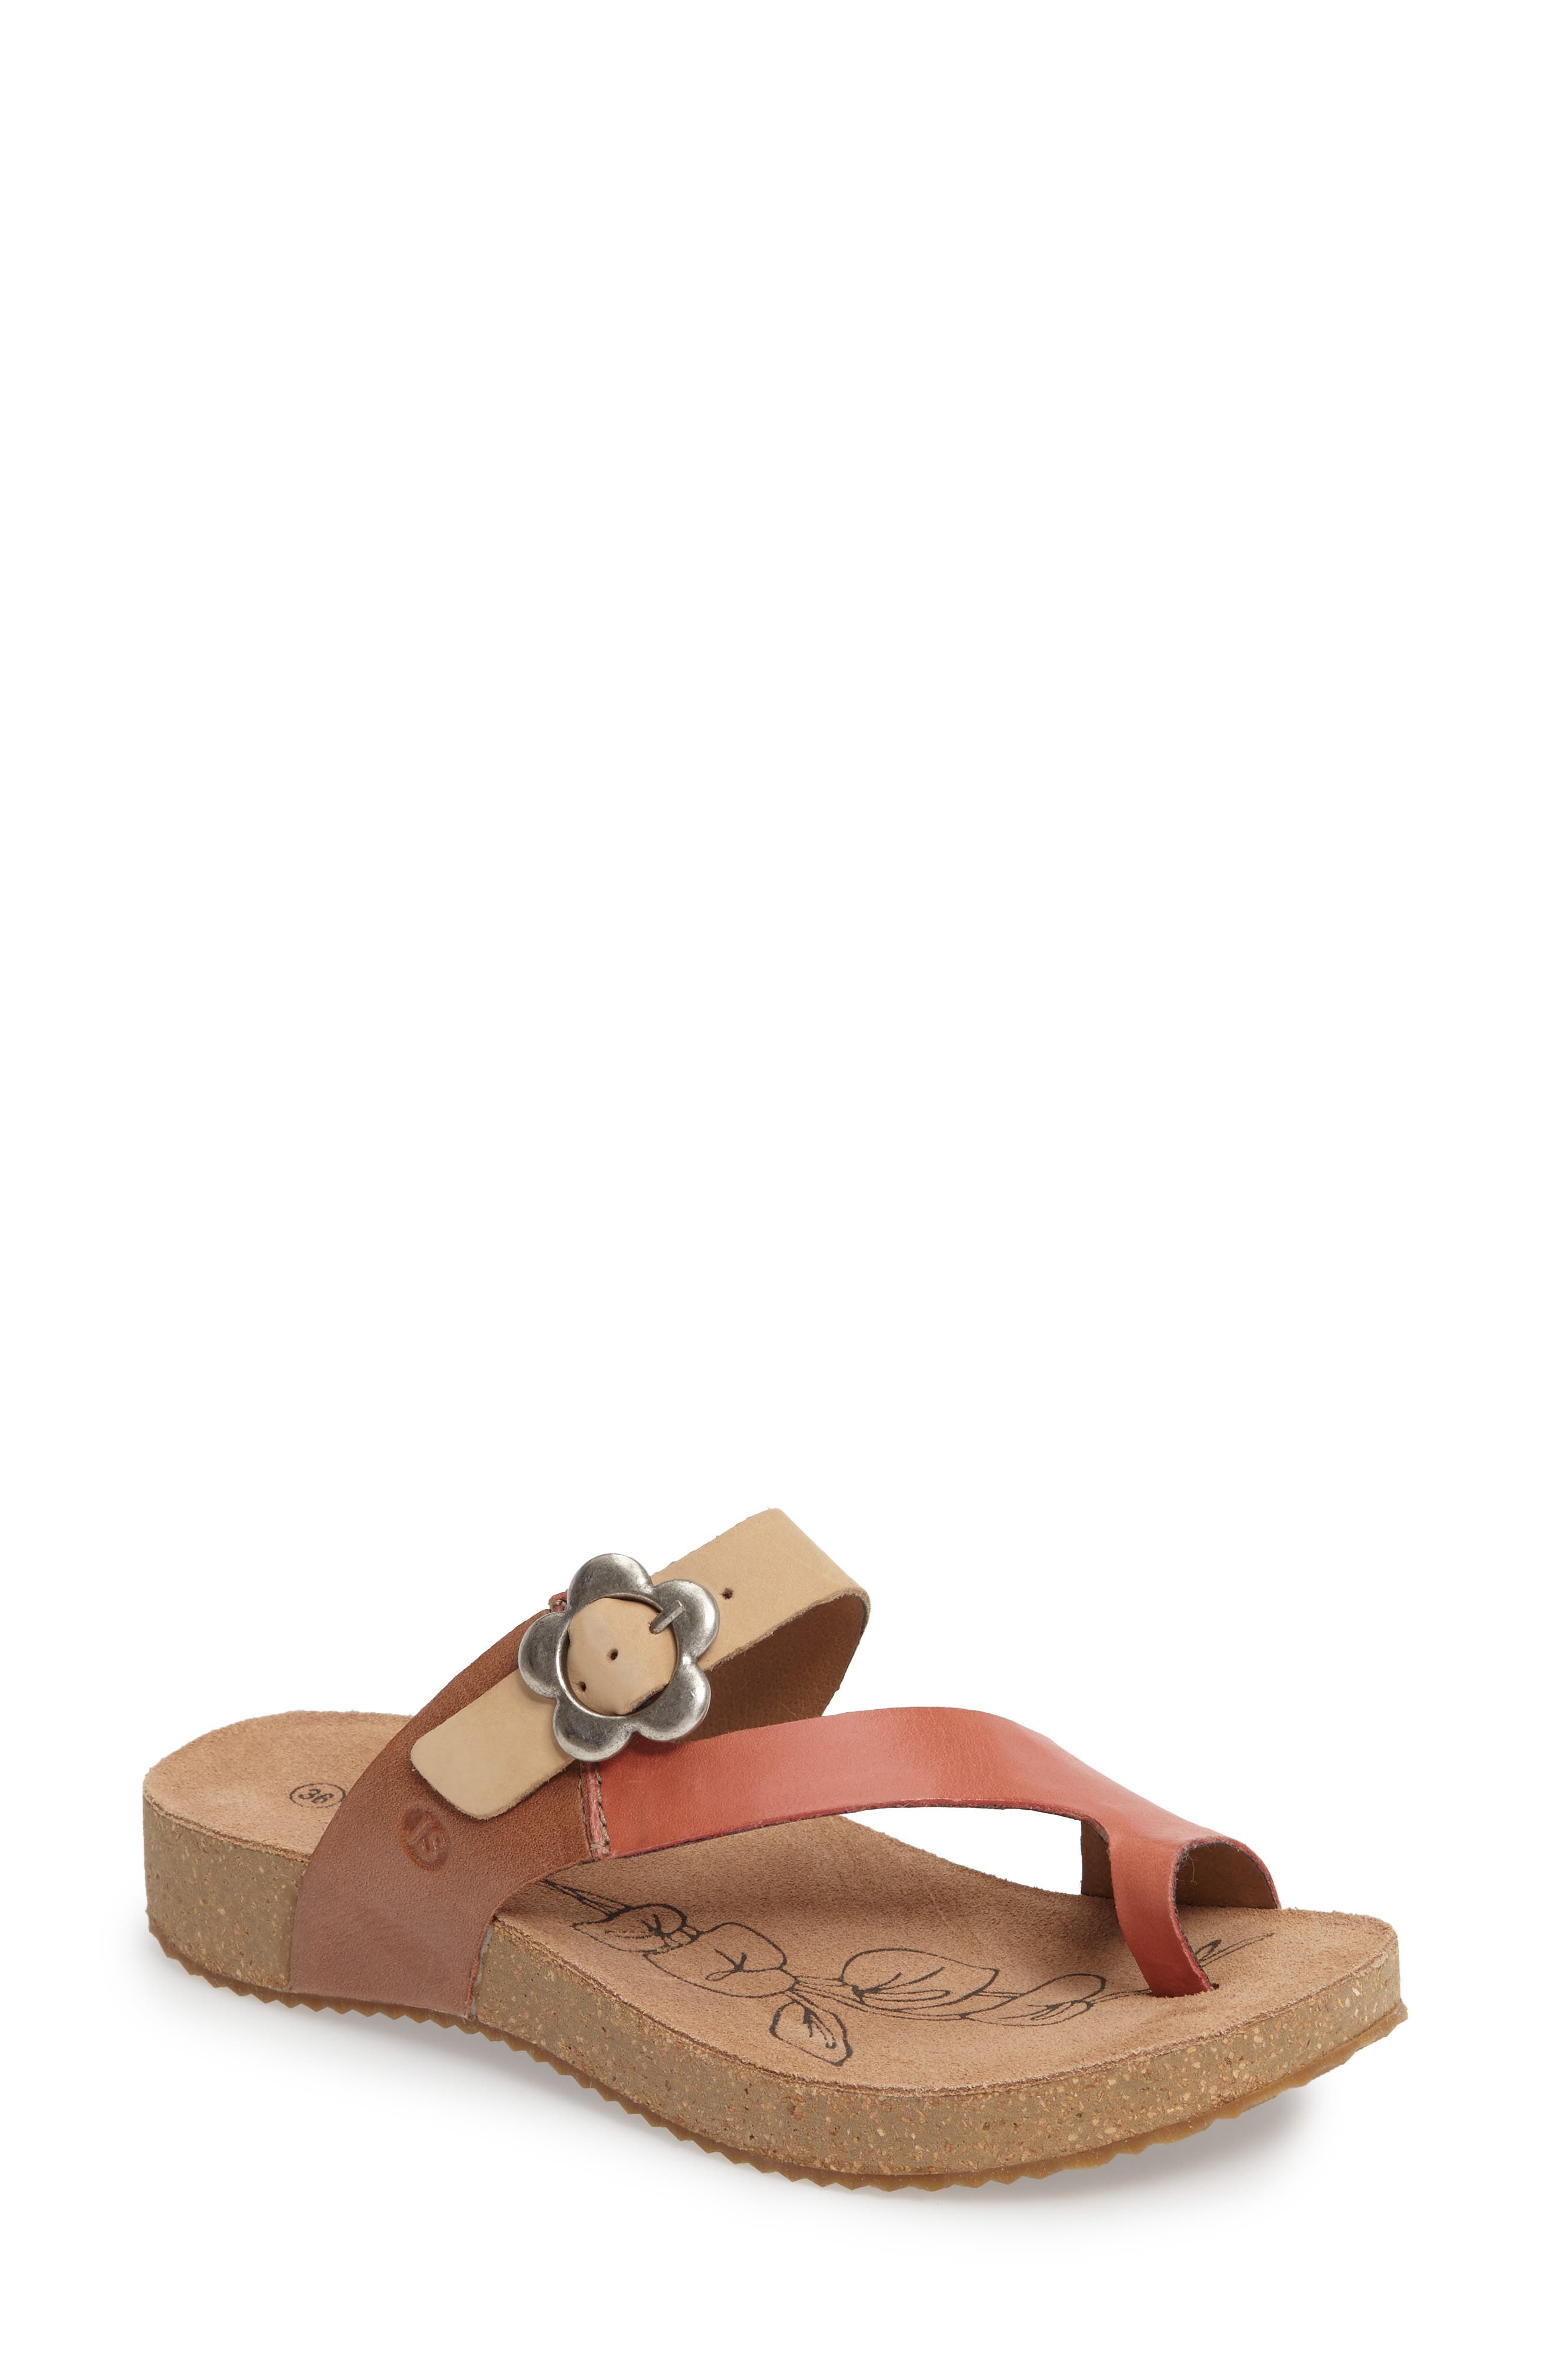 Tonga 23 Sandal,                             Main thumbnail 1, color,                             KORALLE MULTI LEATHER